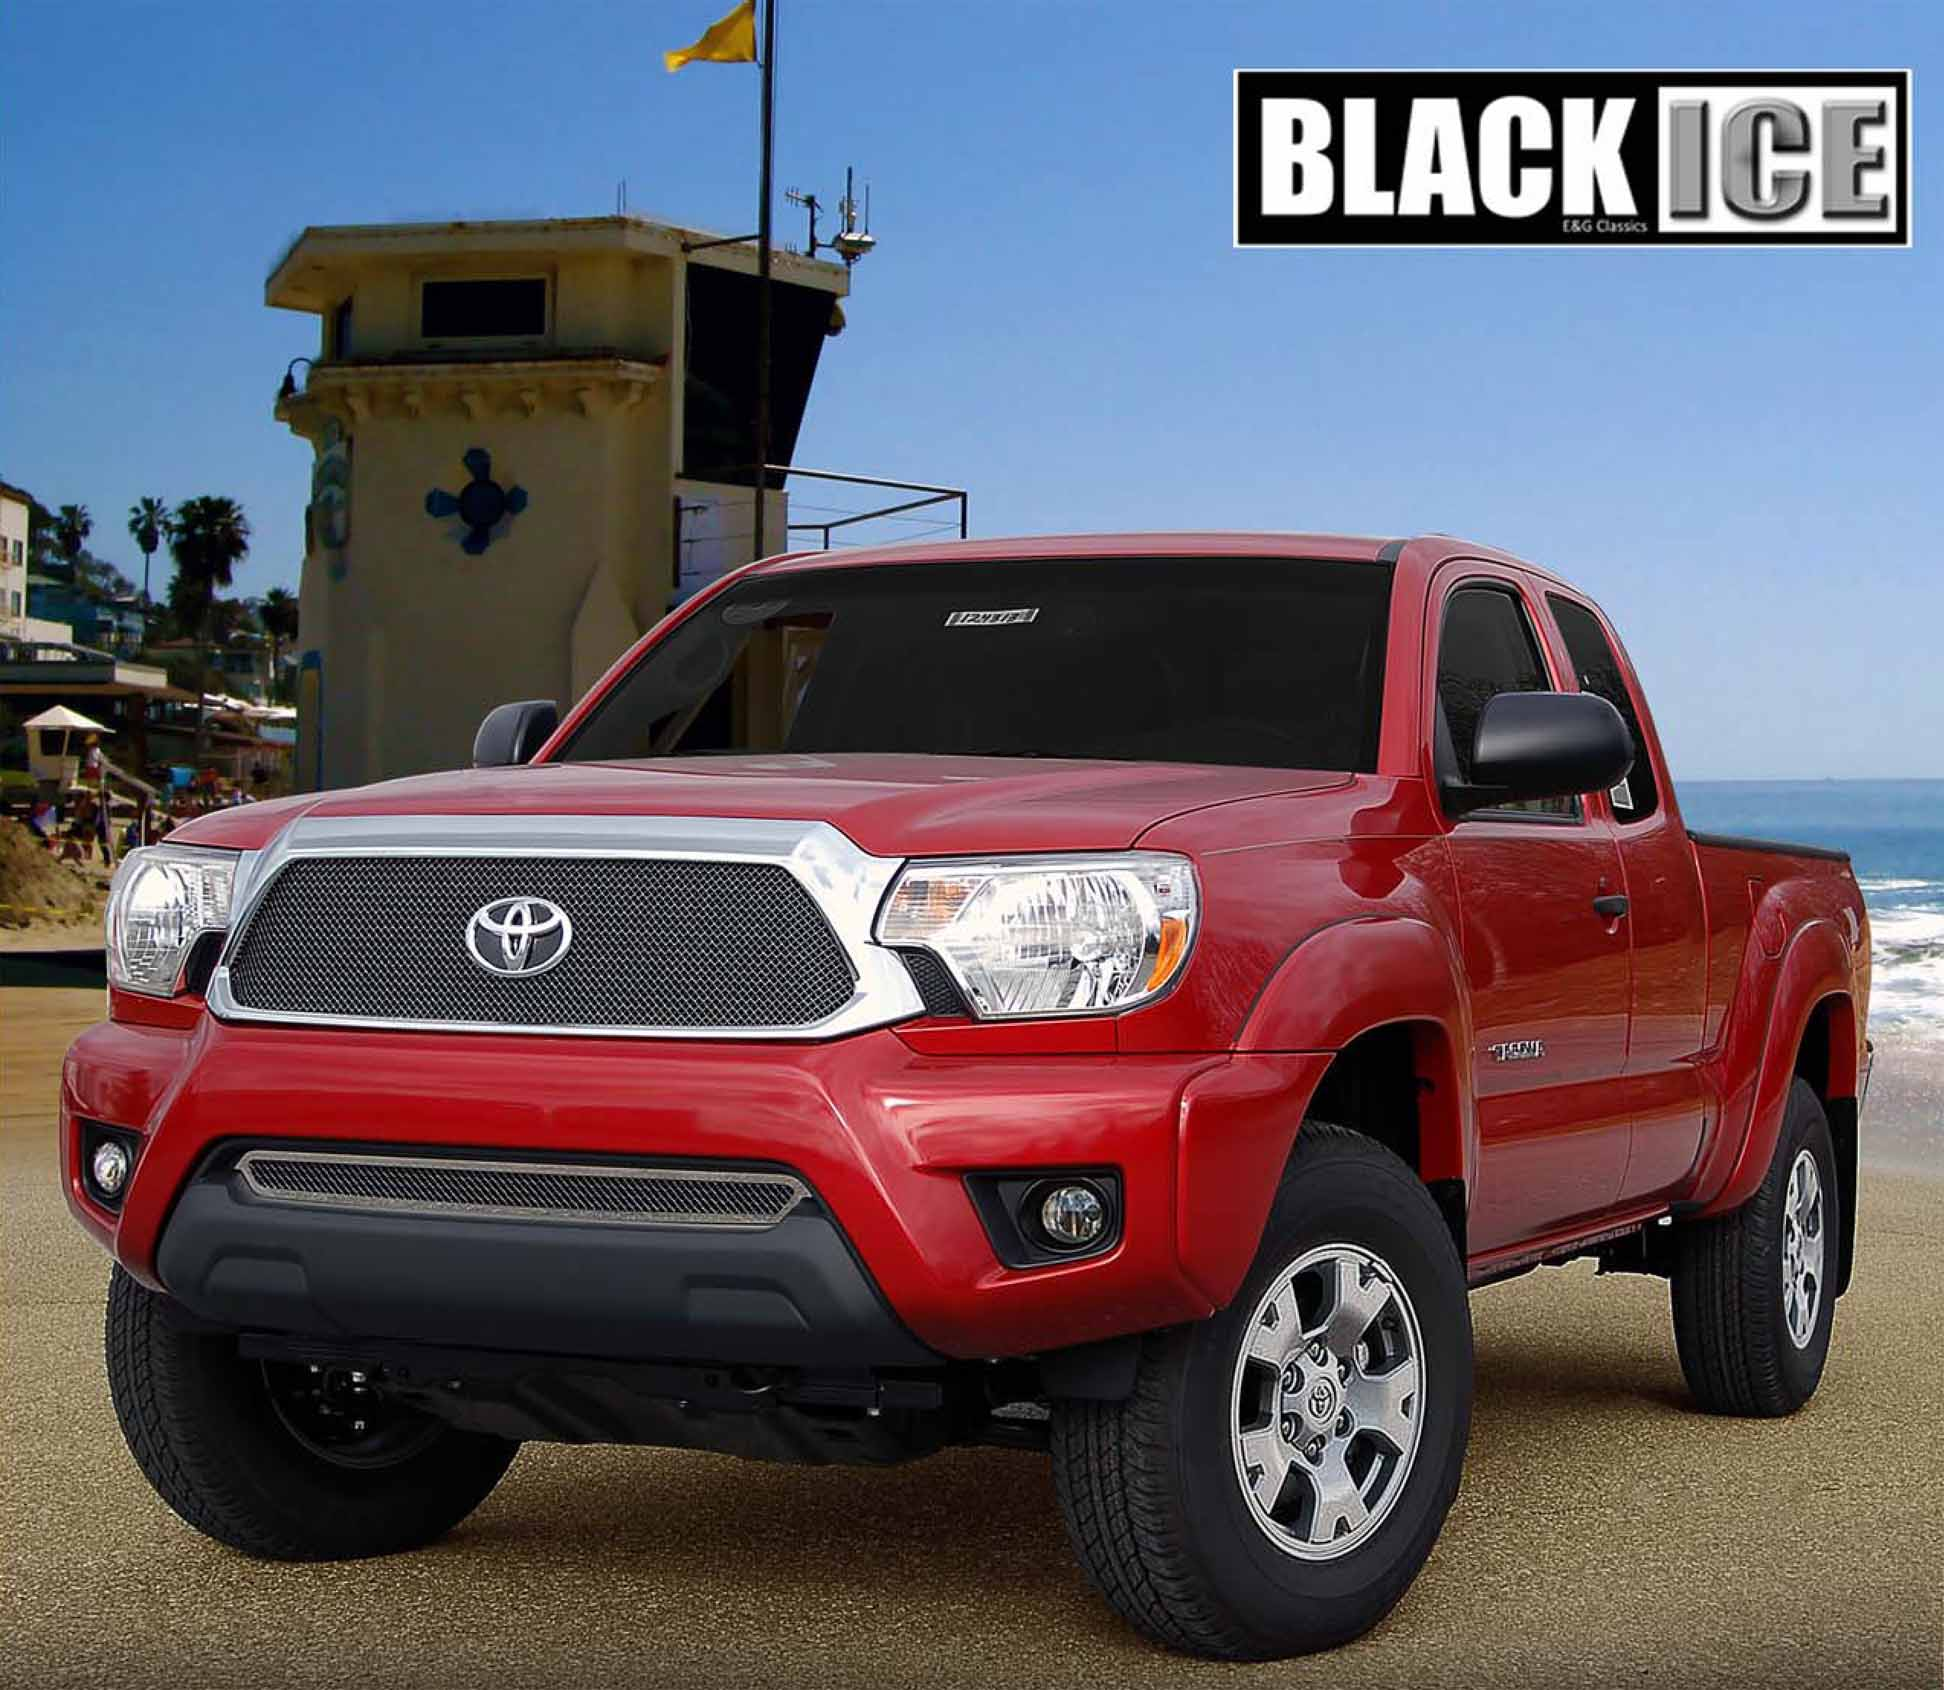 2006 Tacoma Platinum: E&G Best Toyota Prices On The Web And FREE Shipping